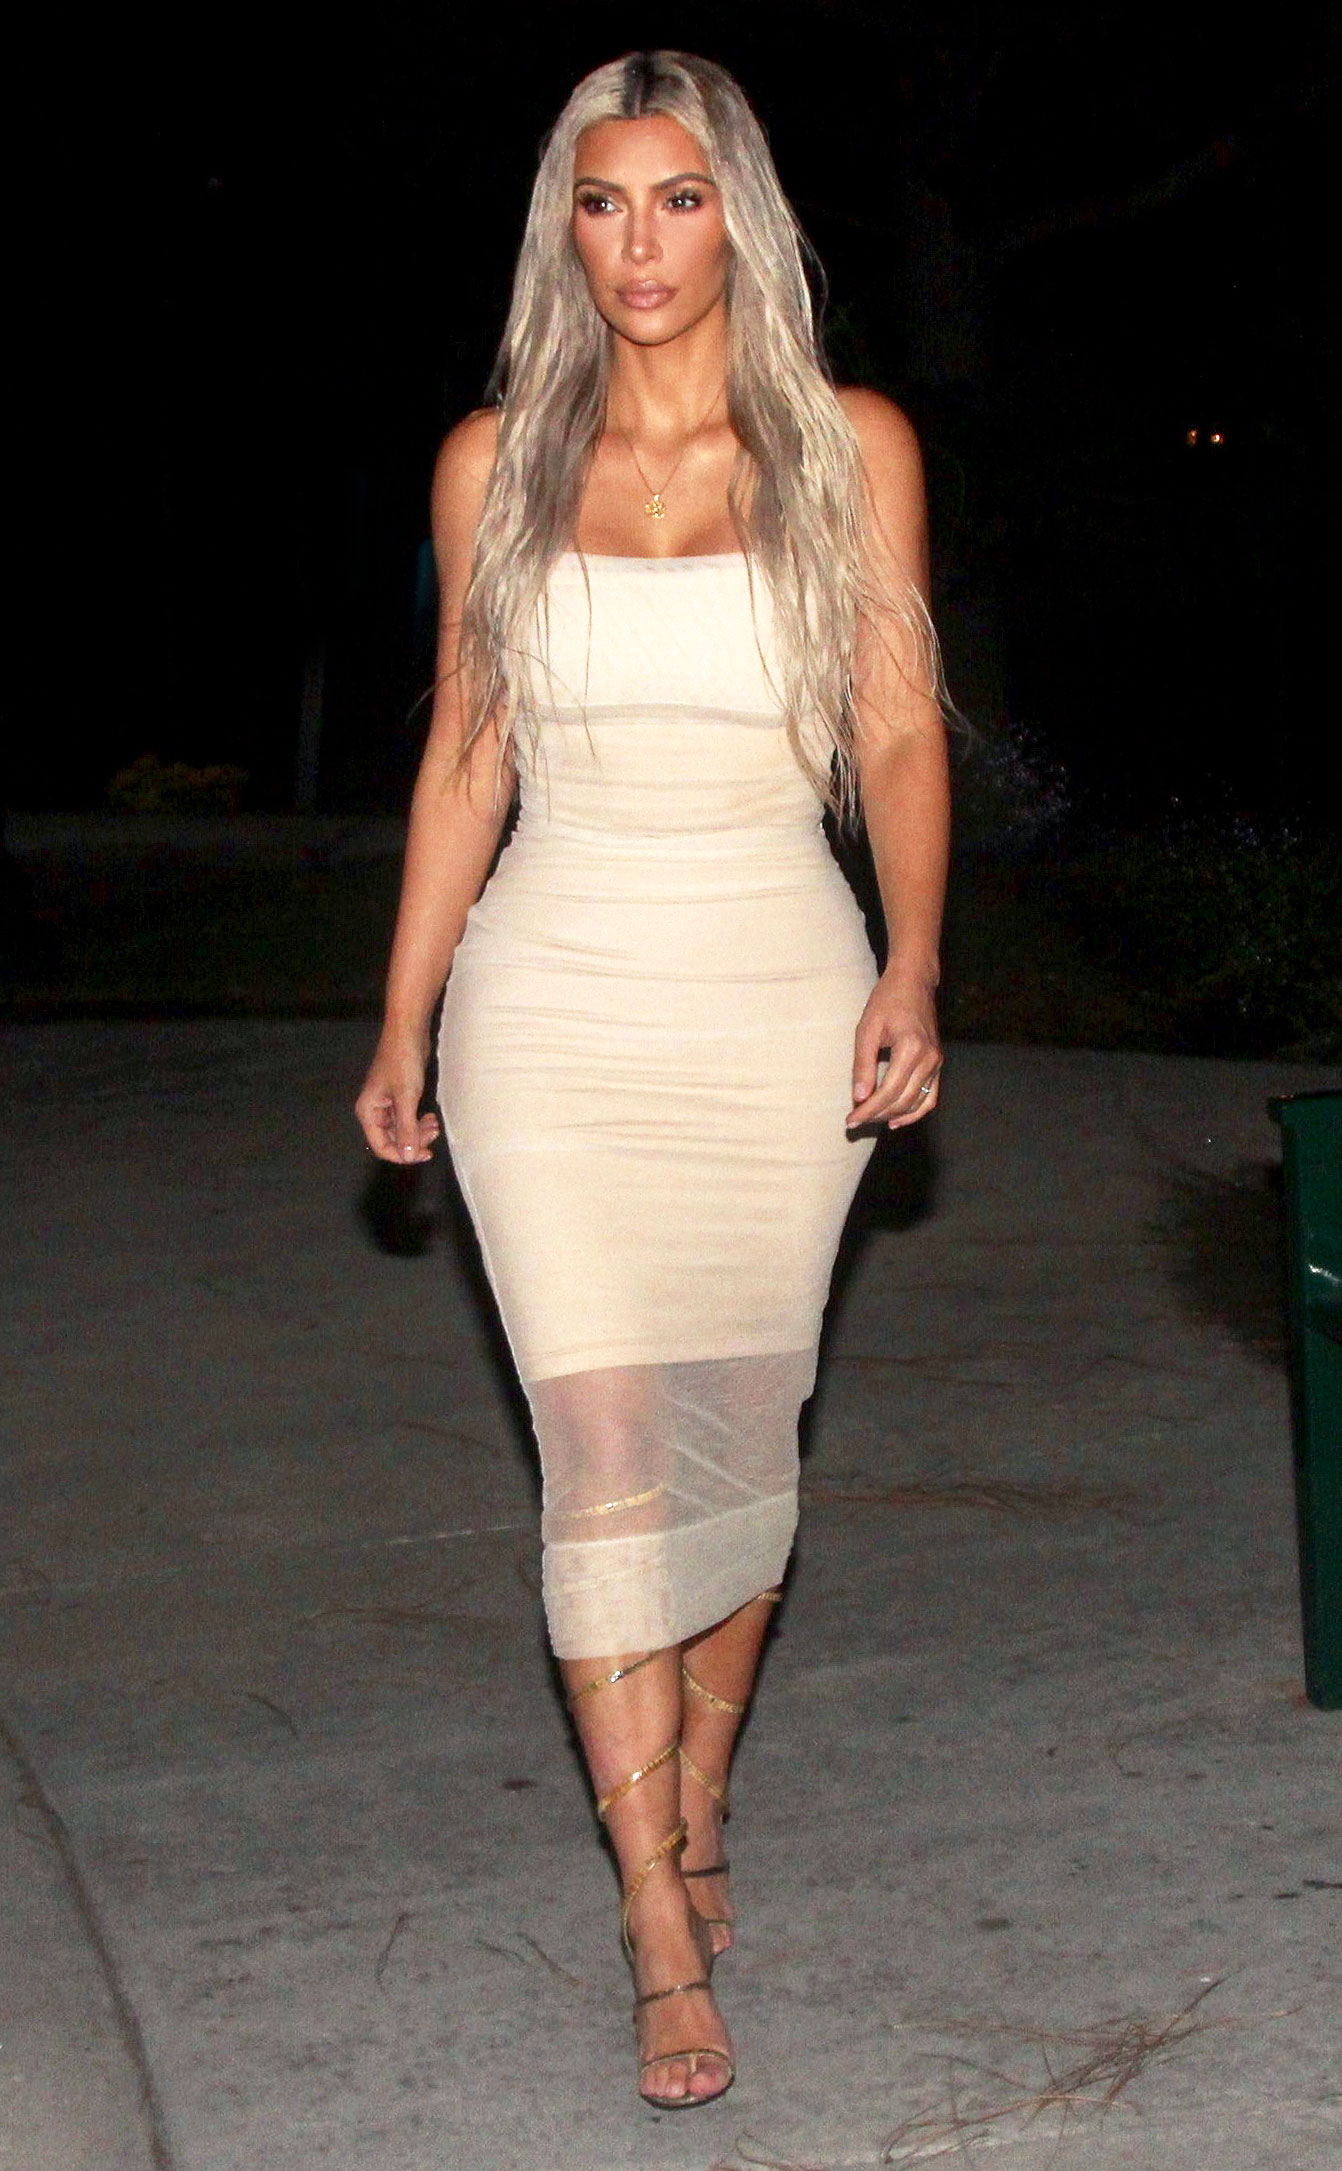 Kim Kardashian came out in a dress with a breasted 12/07/2017 16